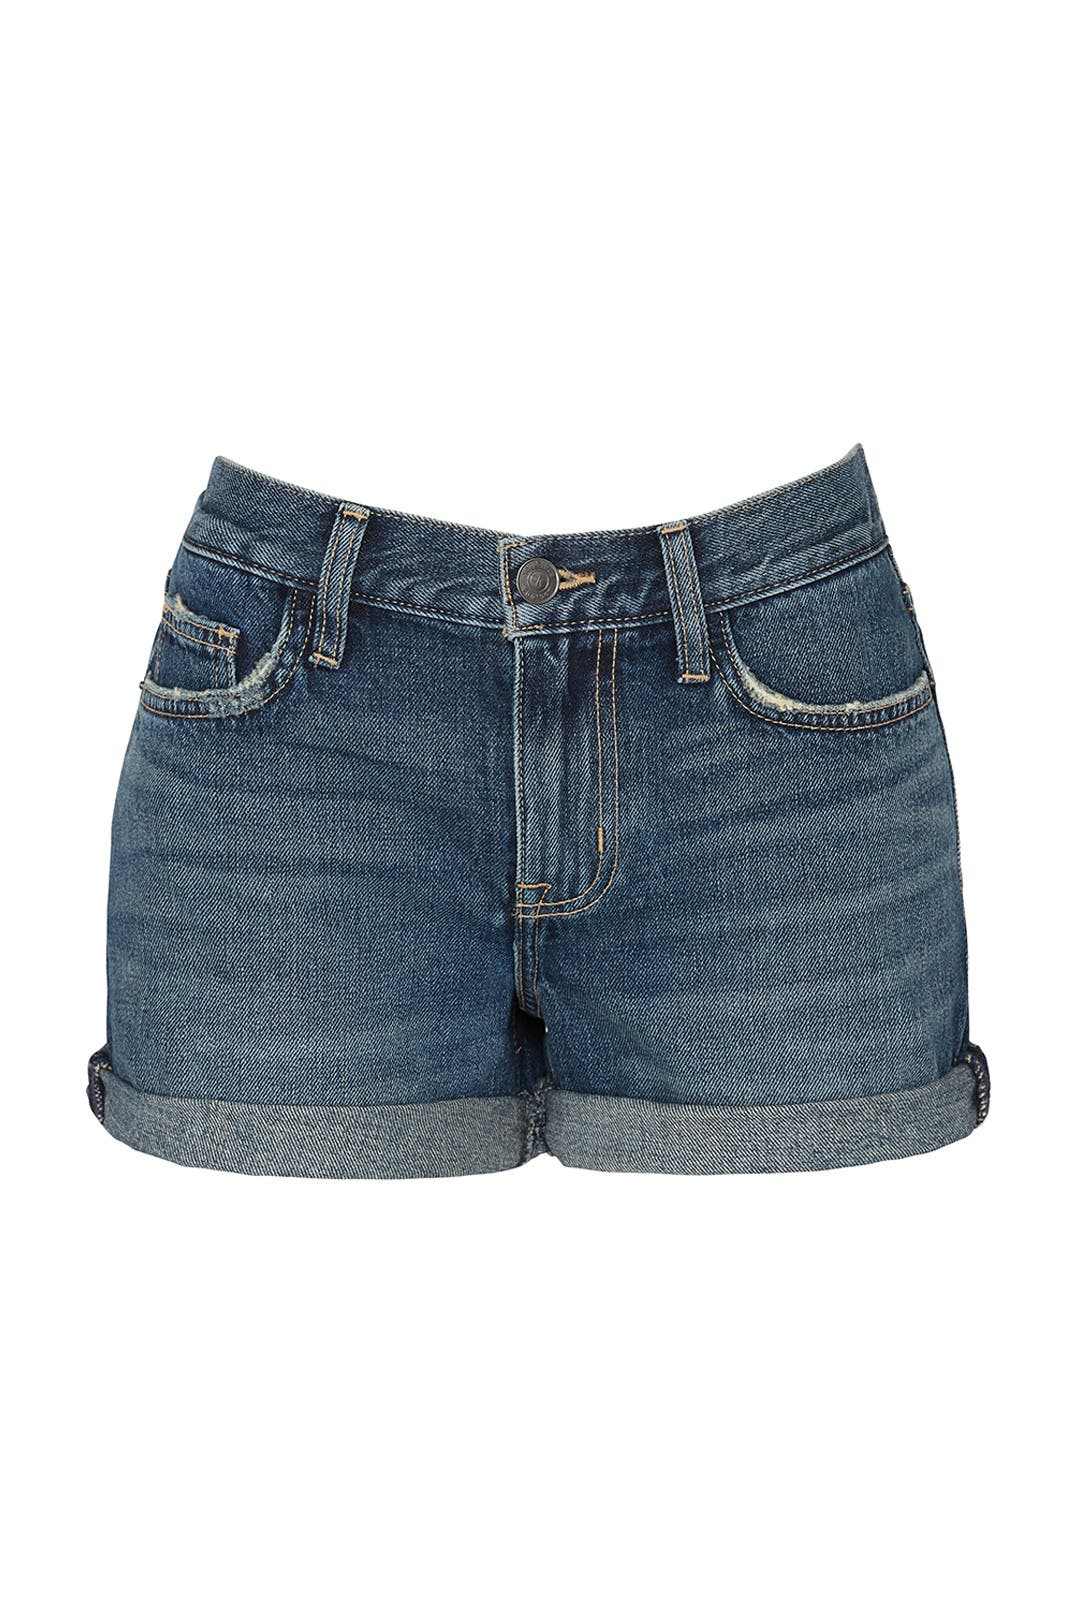 f5a9211e8a The Boyfriend Rolled Shorts by Current Elliott for  30